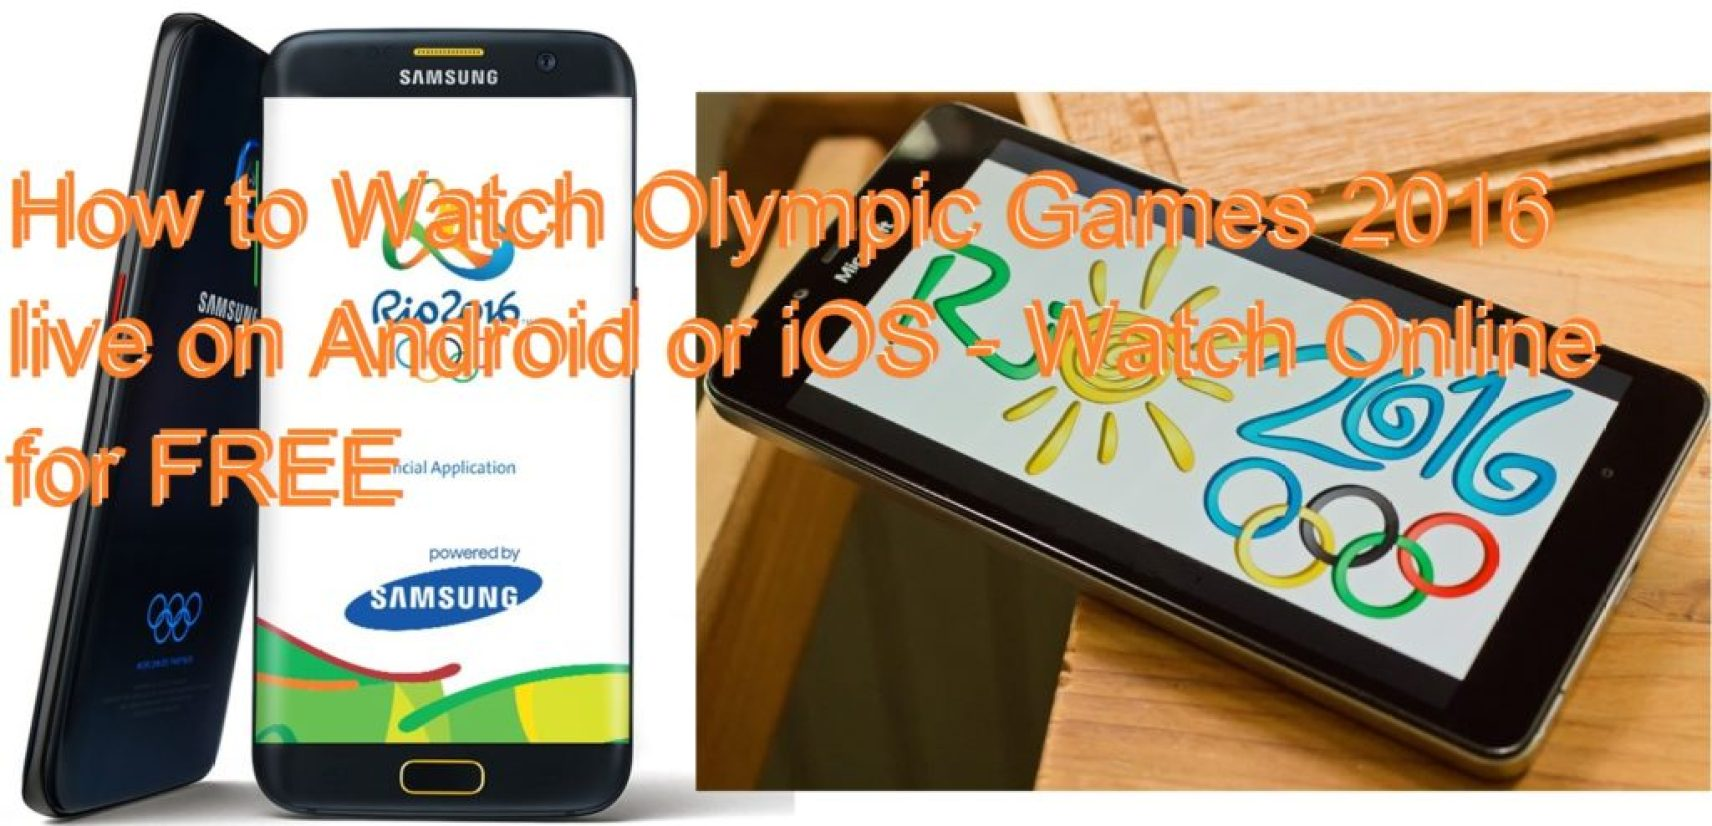 How to Watch Olympic Games 2016 live on Android or iOS - Watch Online for FREE